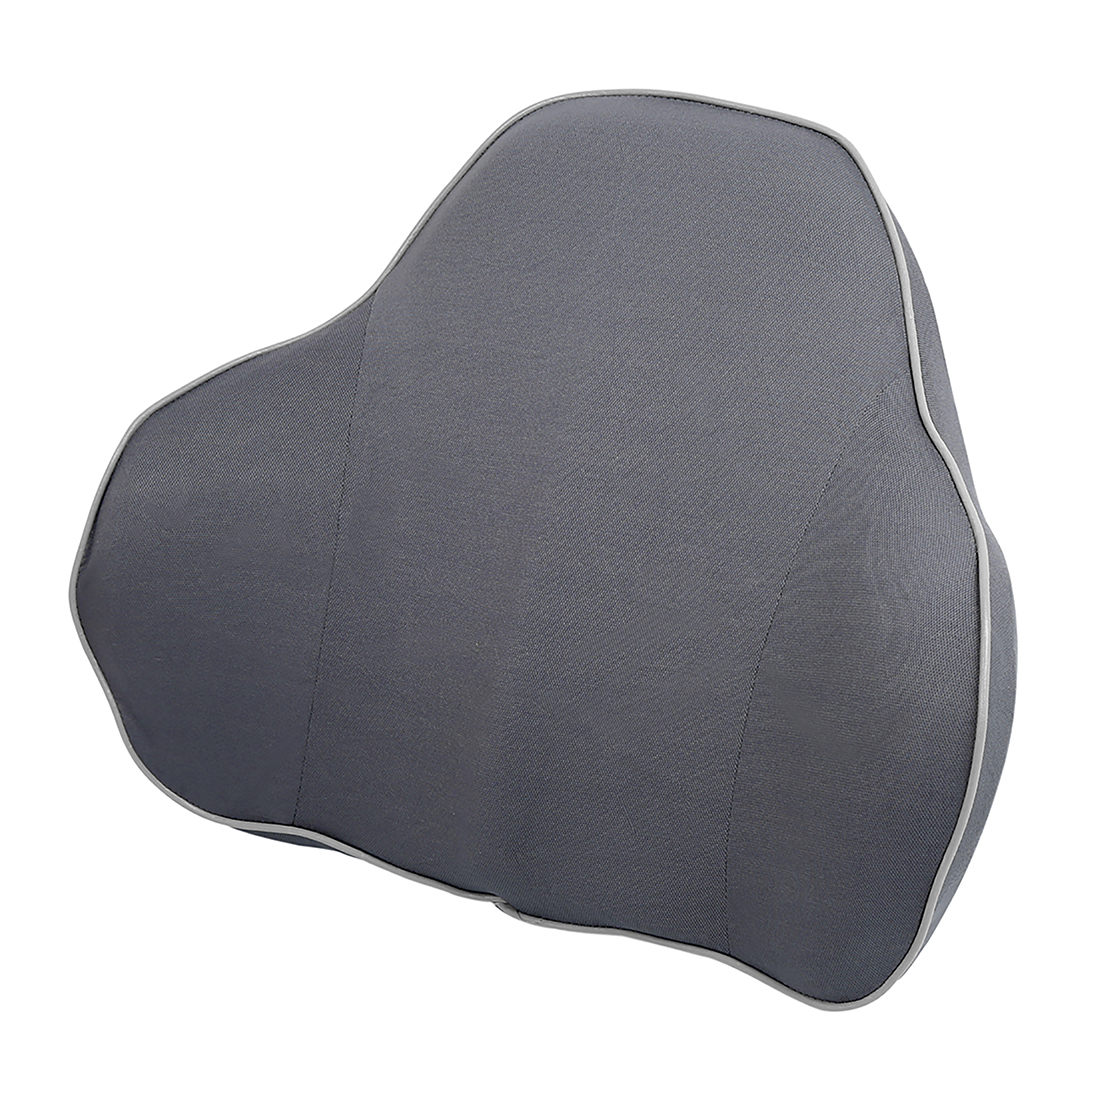 Car Seat Backrests Pillow Lumbar Rest Soft Memory Foam Breathable Cushion Gray